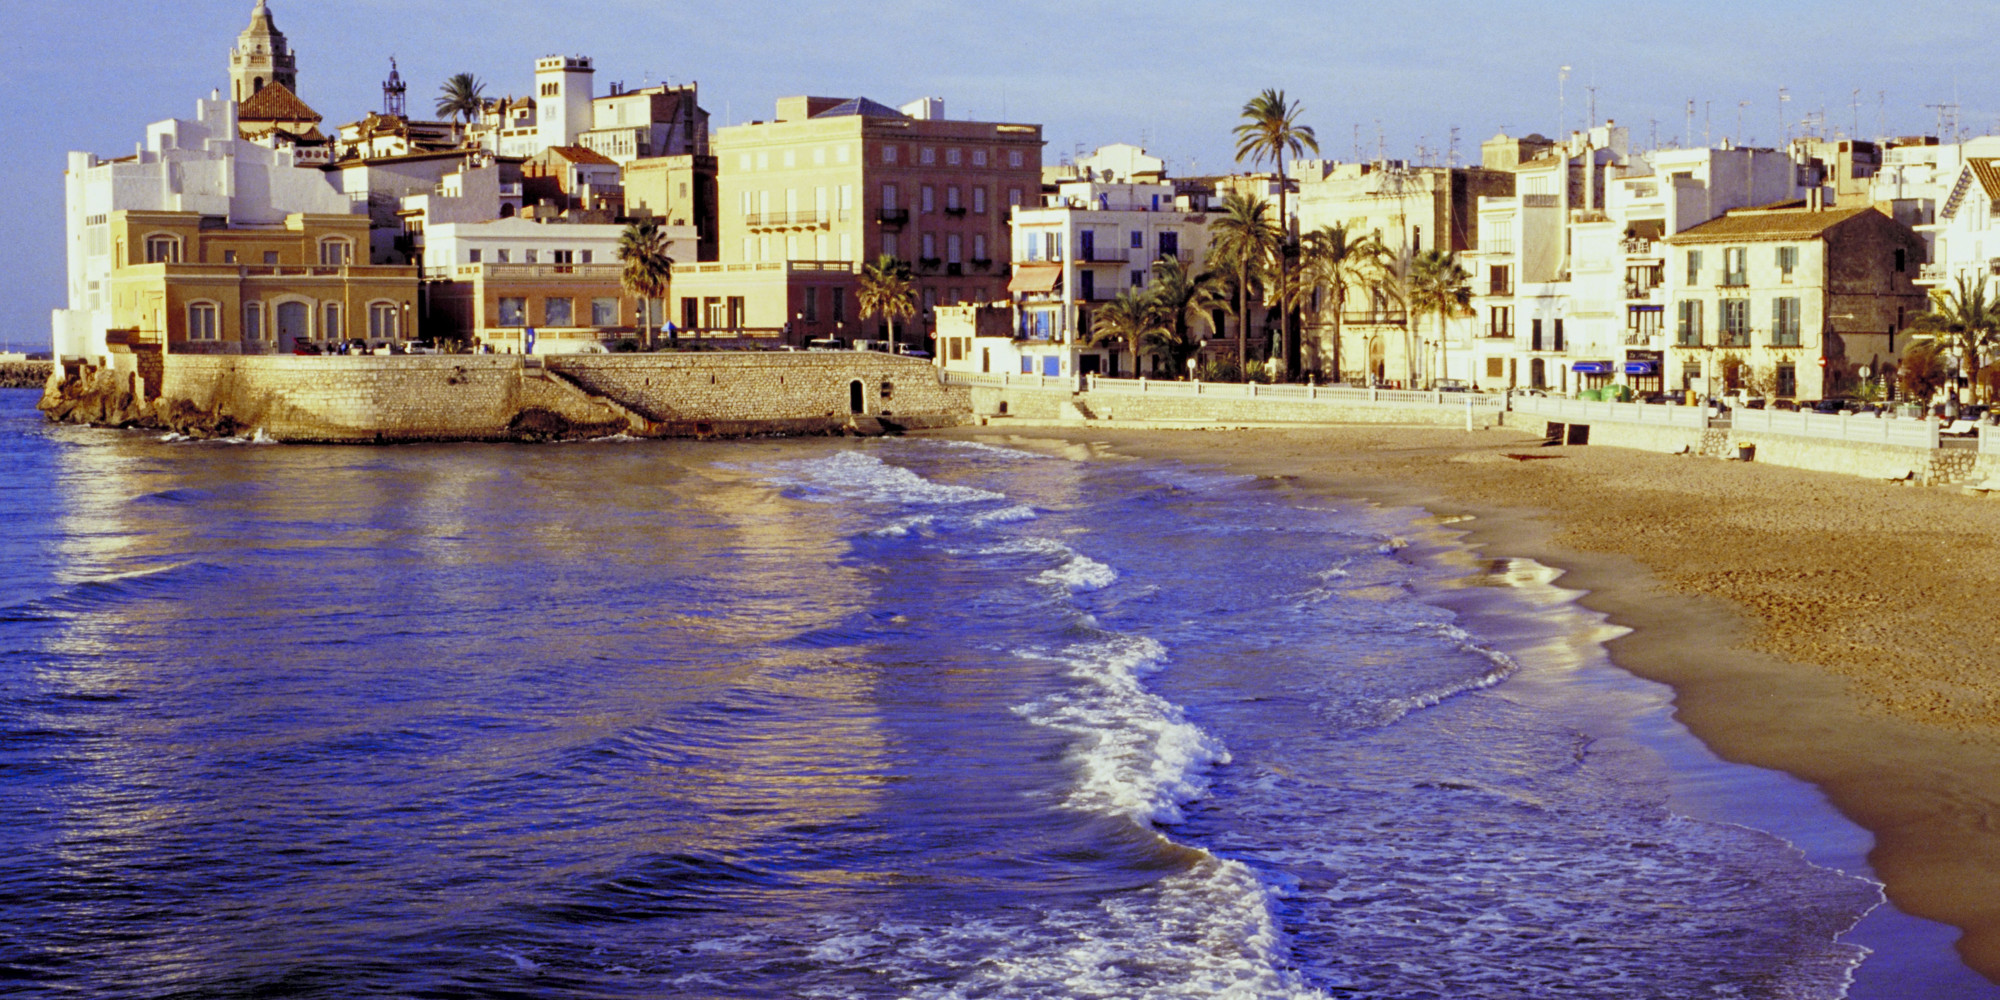 20 Reasons to Drop Everything and Go to Spain | HuffPost